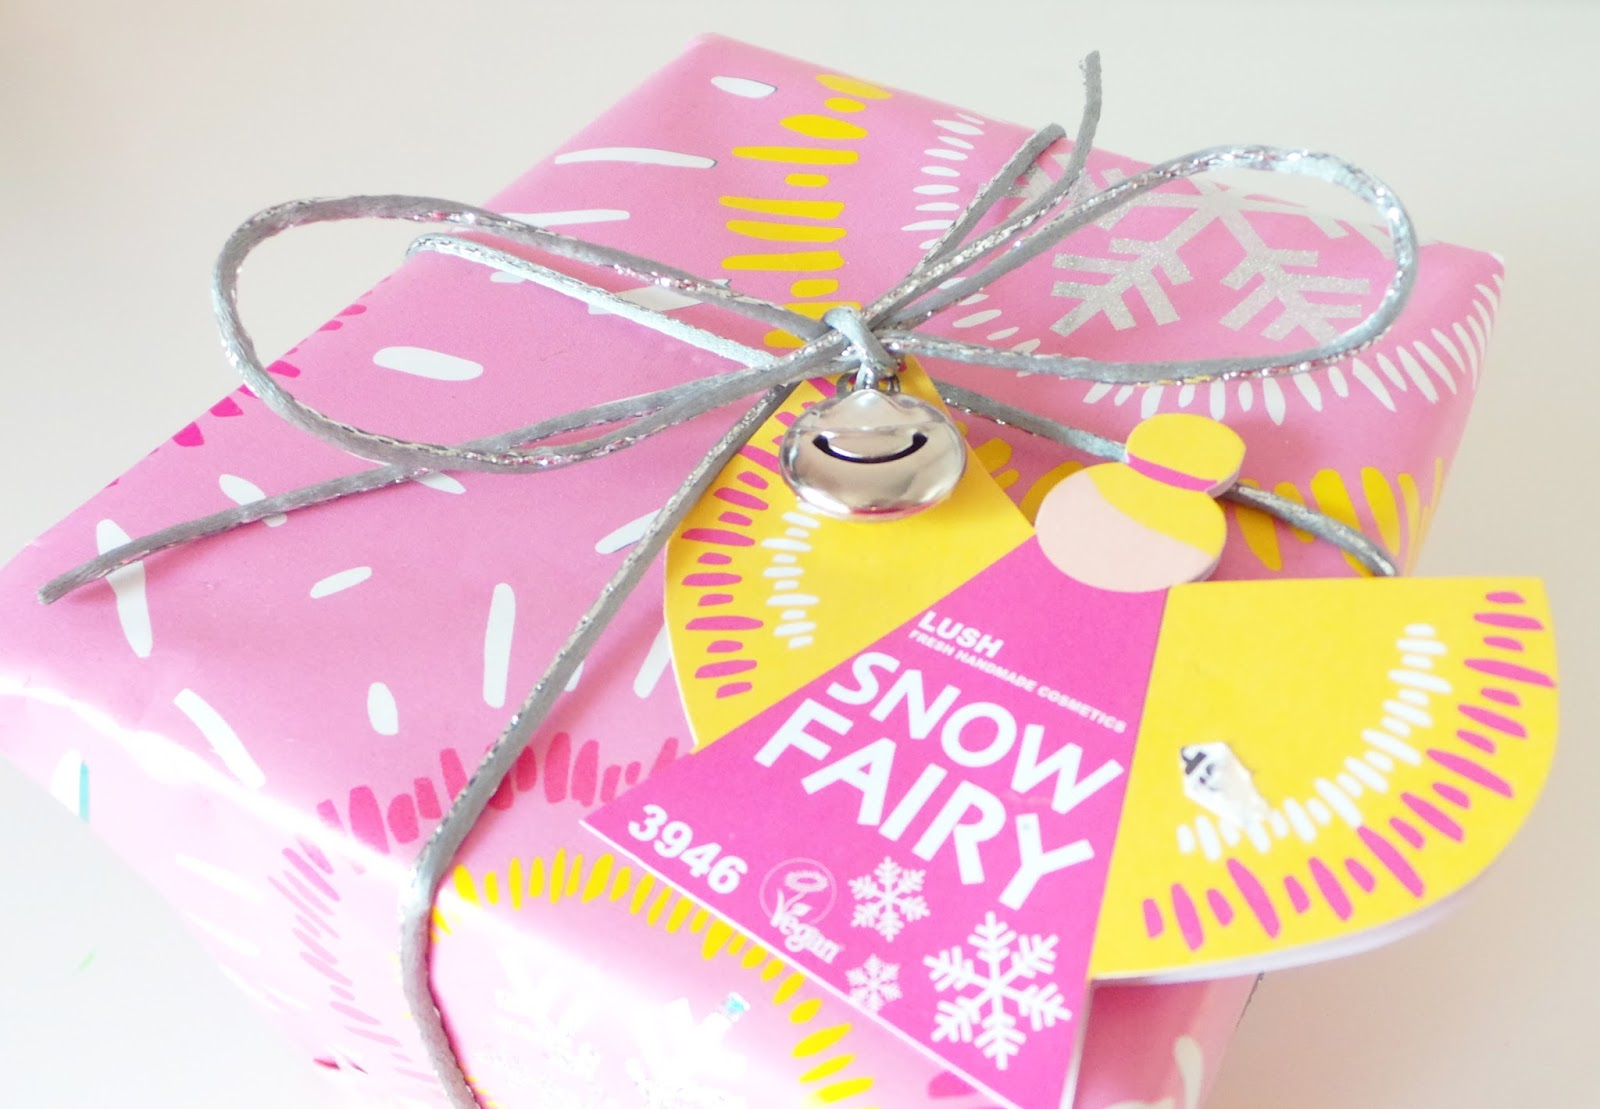 Review LUSH Snow fairy gift box gift set christmas, Lush snow fairy shower gel, lush shimmy shimmy shimmer bar, lush angels delight soap